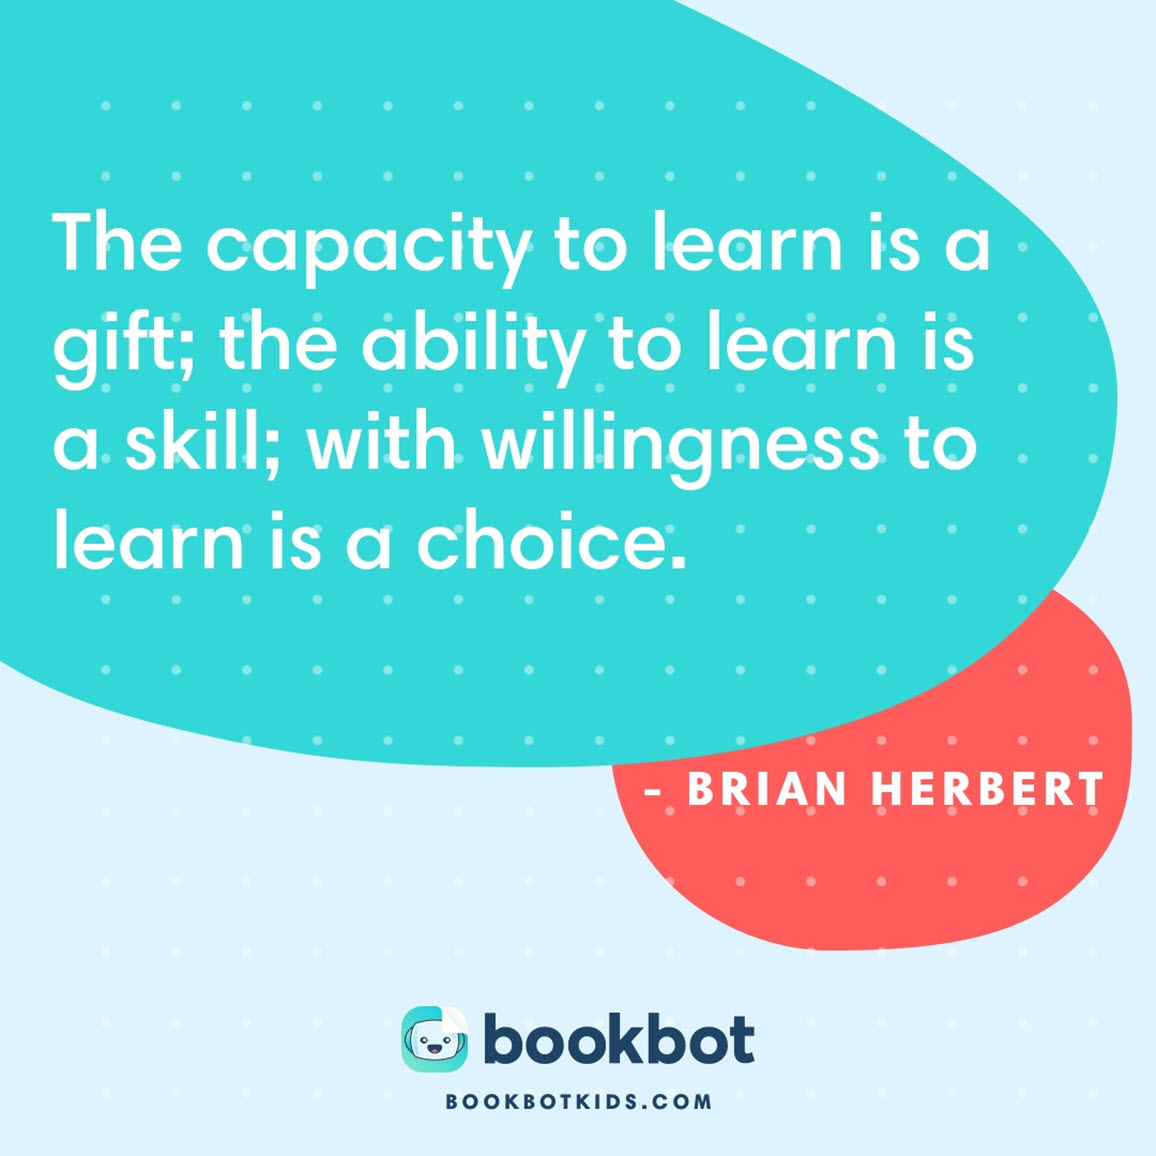 The capacity to learn is a gift; the ability to learn is a skill; with willingness to learn is a choice. – Brian Herbert